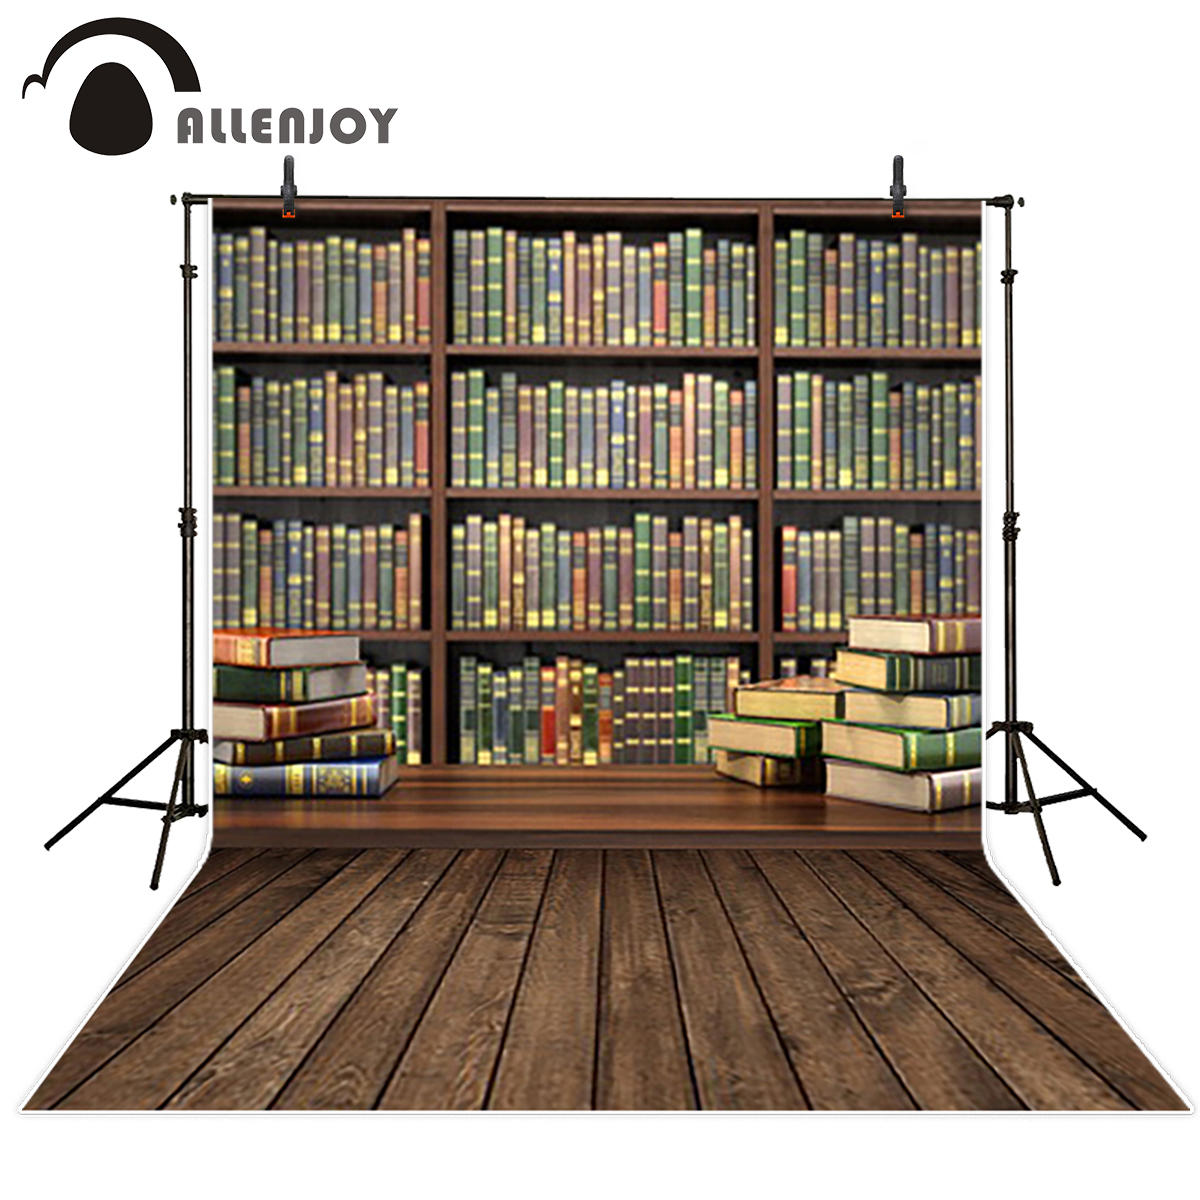 Allenjoy background for photographic studio Book Cabinets Learn education thin vinyl oxford polyester photography backdrops lego education 9689 простые механизмы